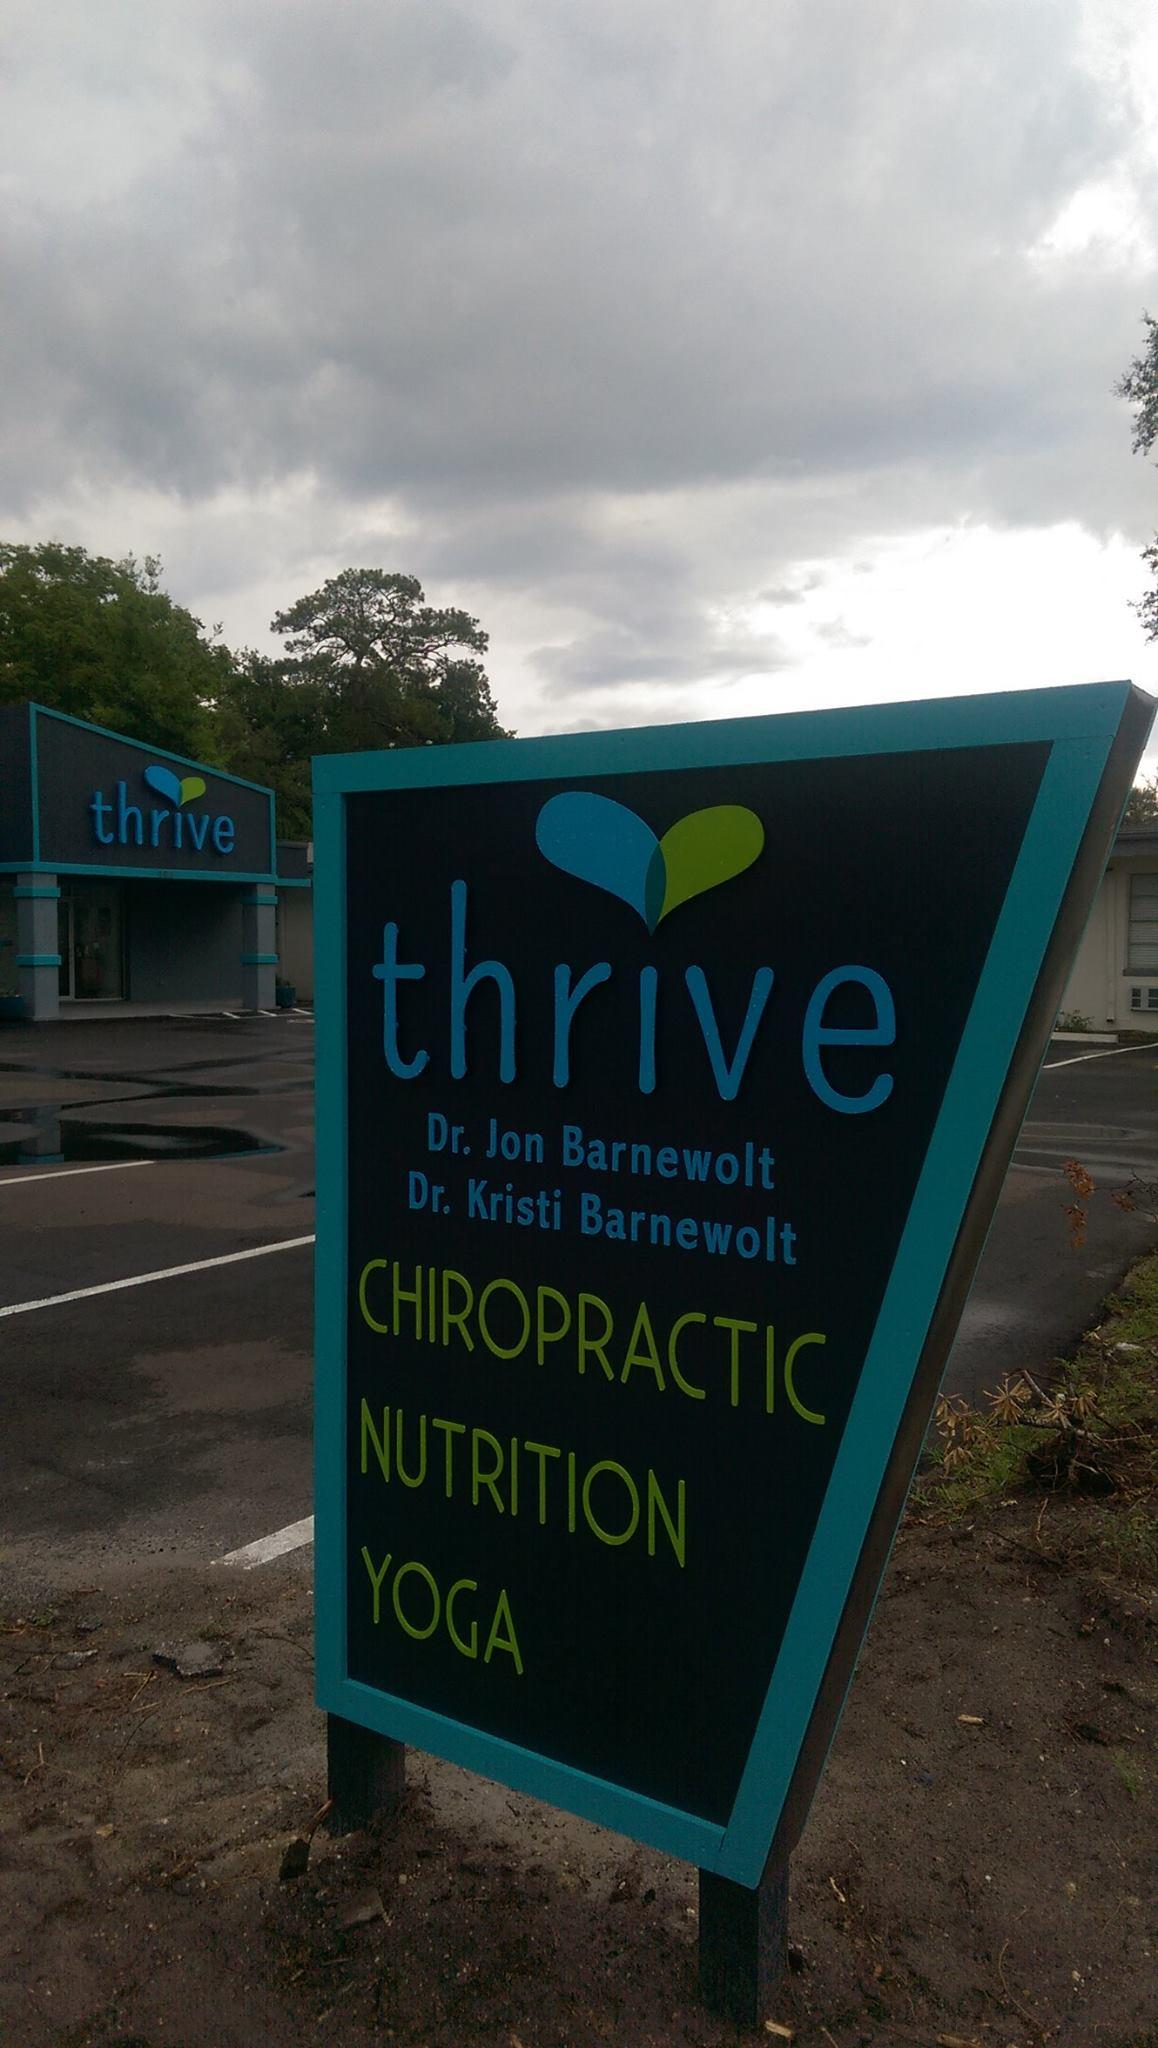 Thrive Chiropractic, Nutrition & Yoga, LLC image 3